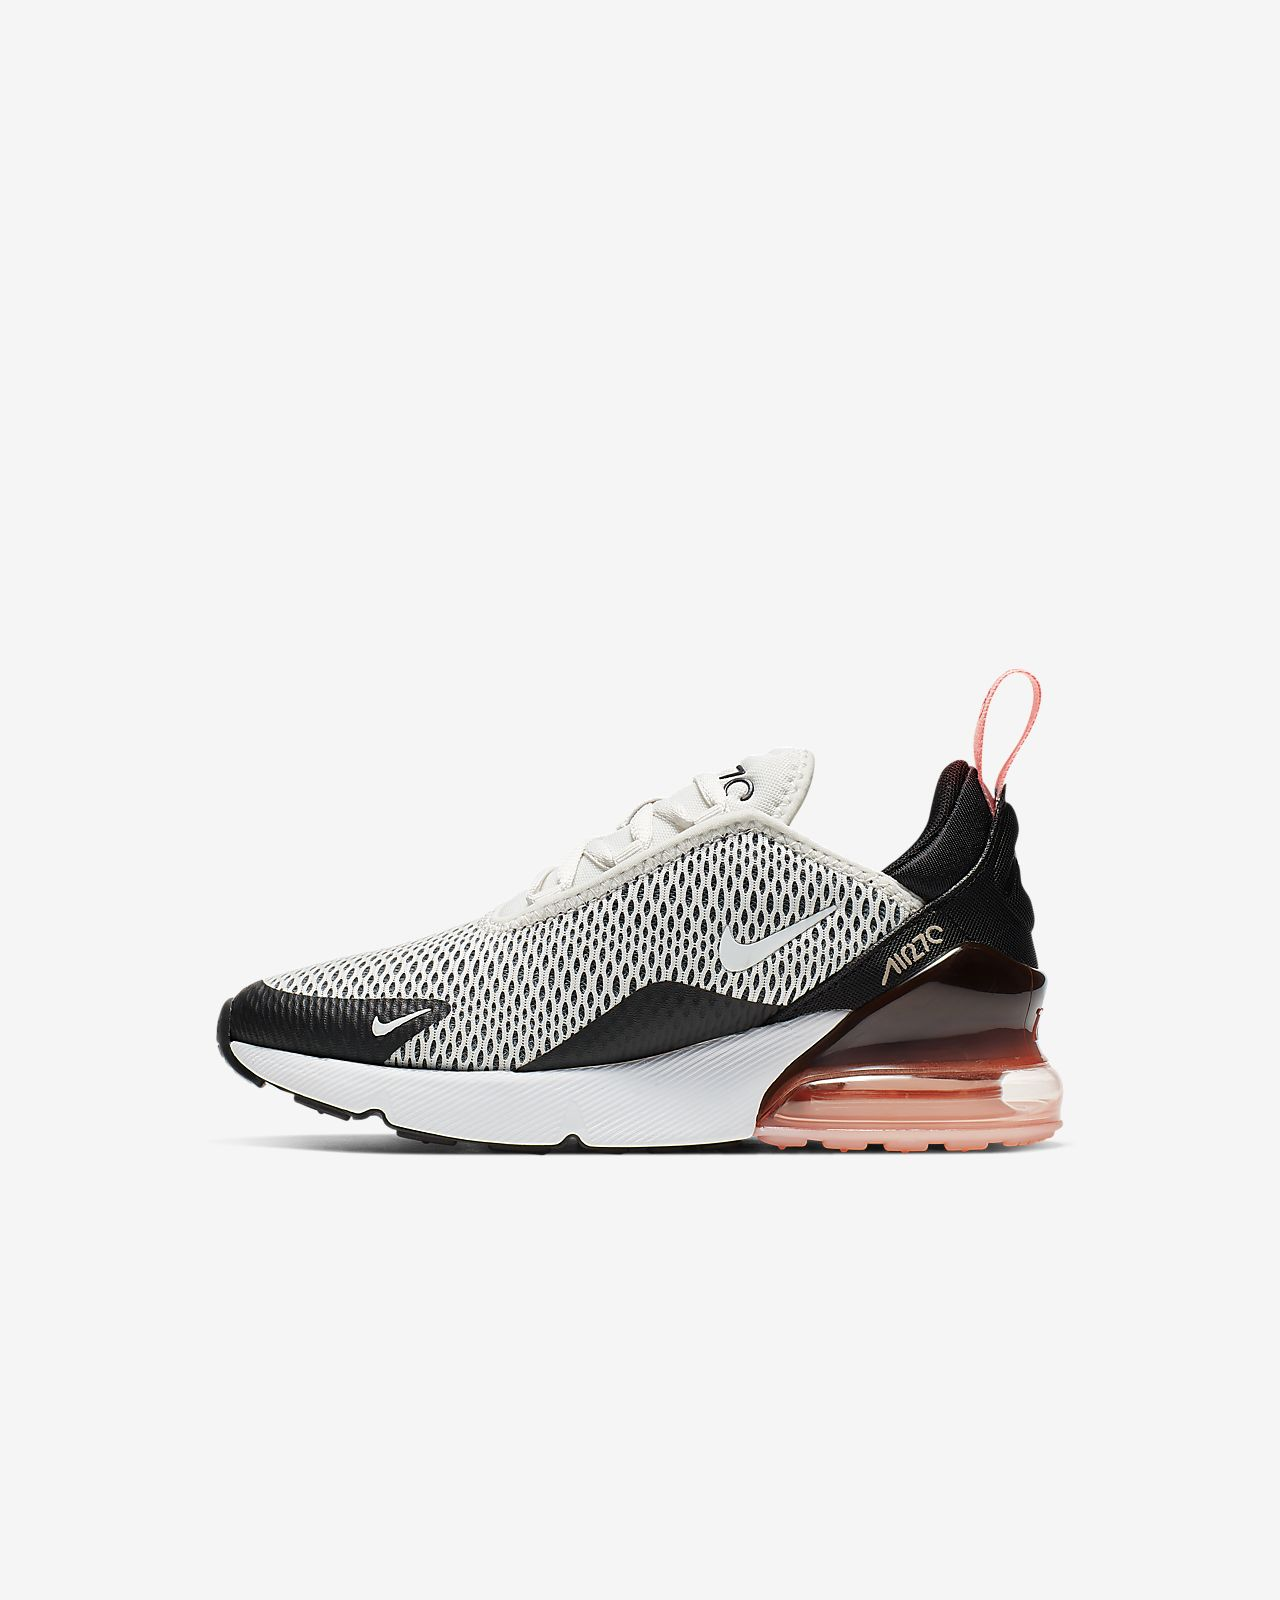 meet cf2e1 c523a Little Kids  Shoe. Nike Air Max 270